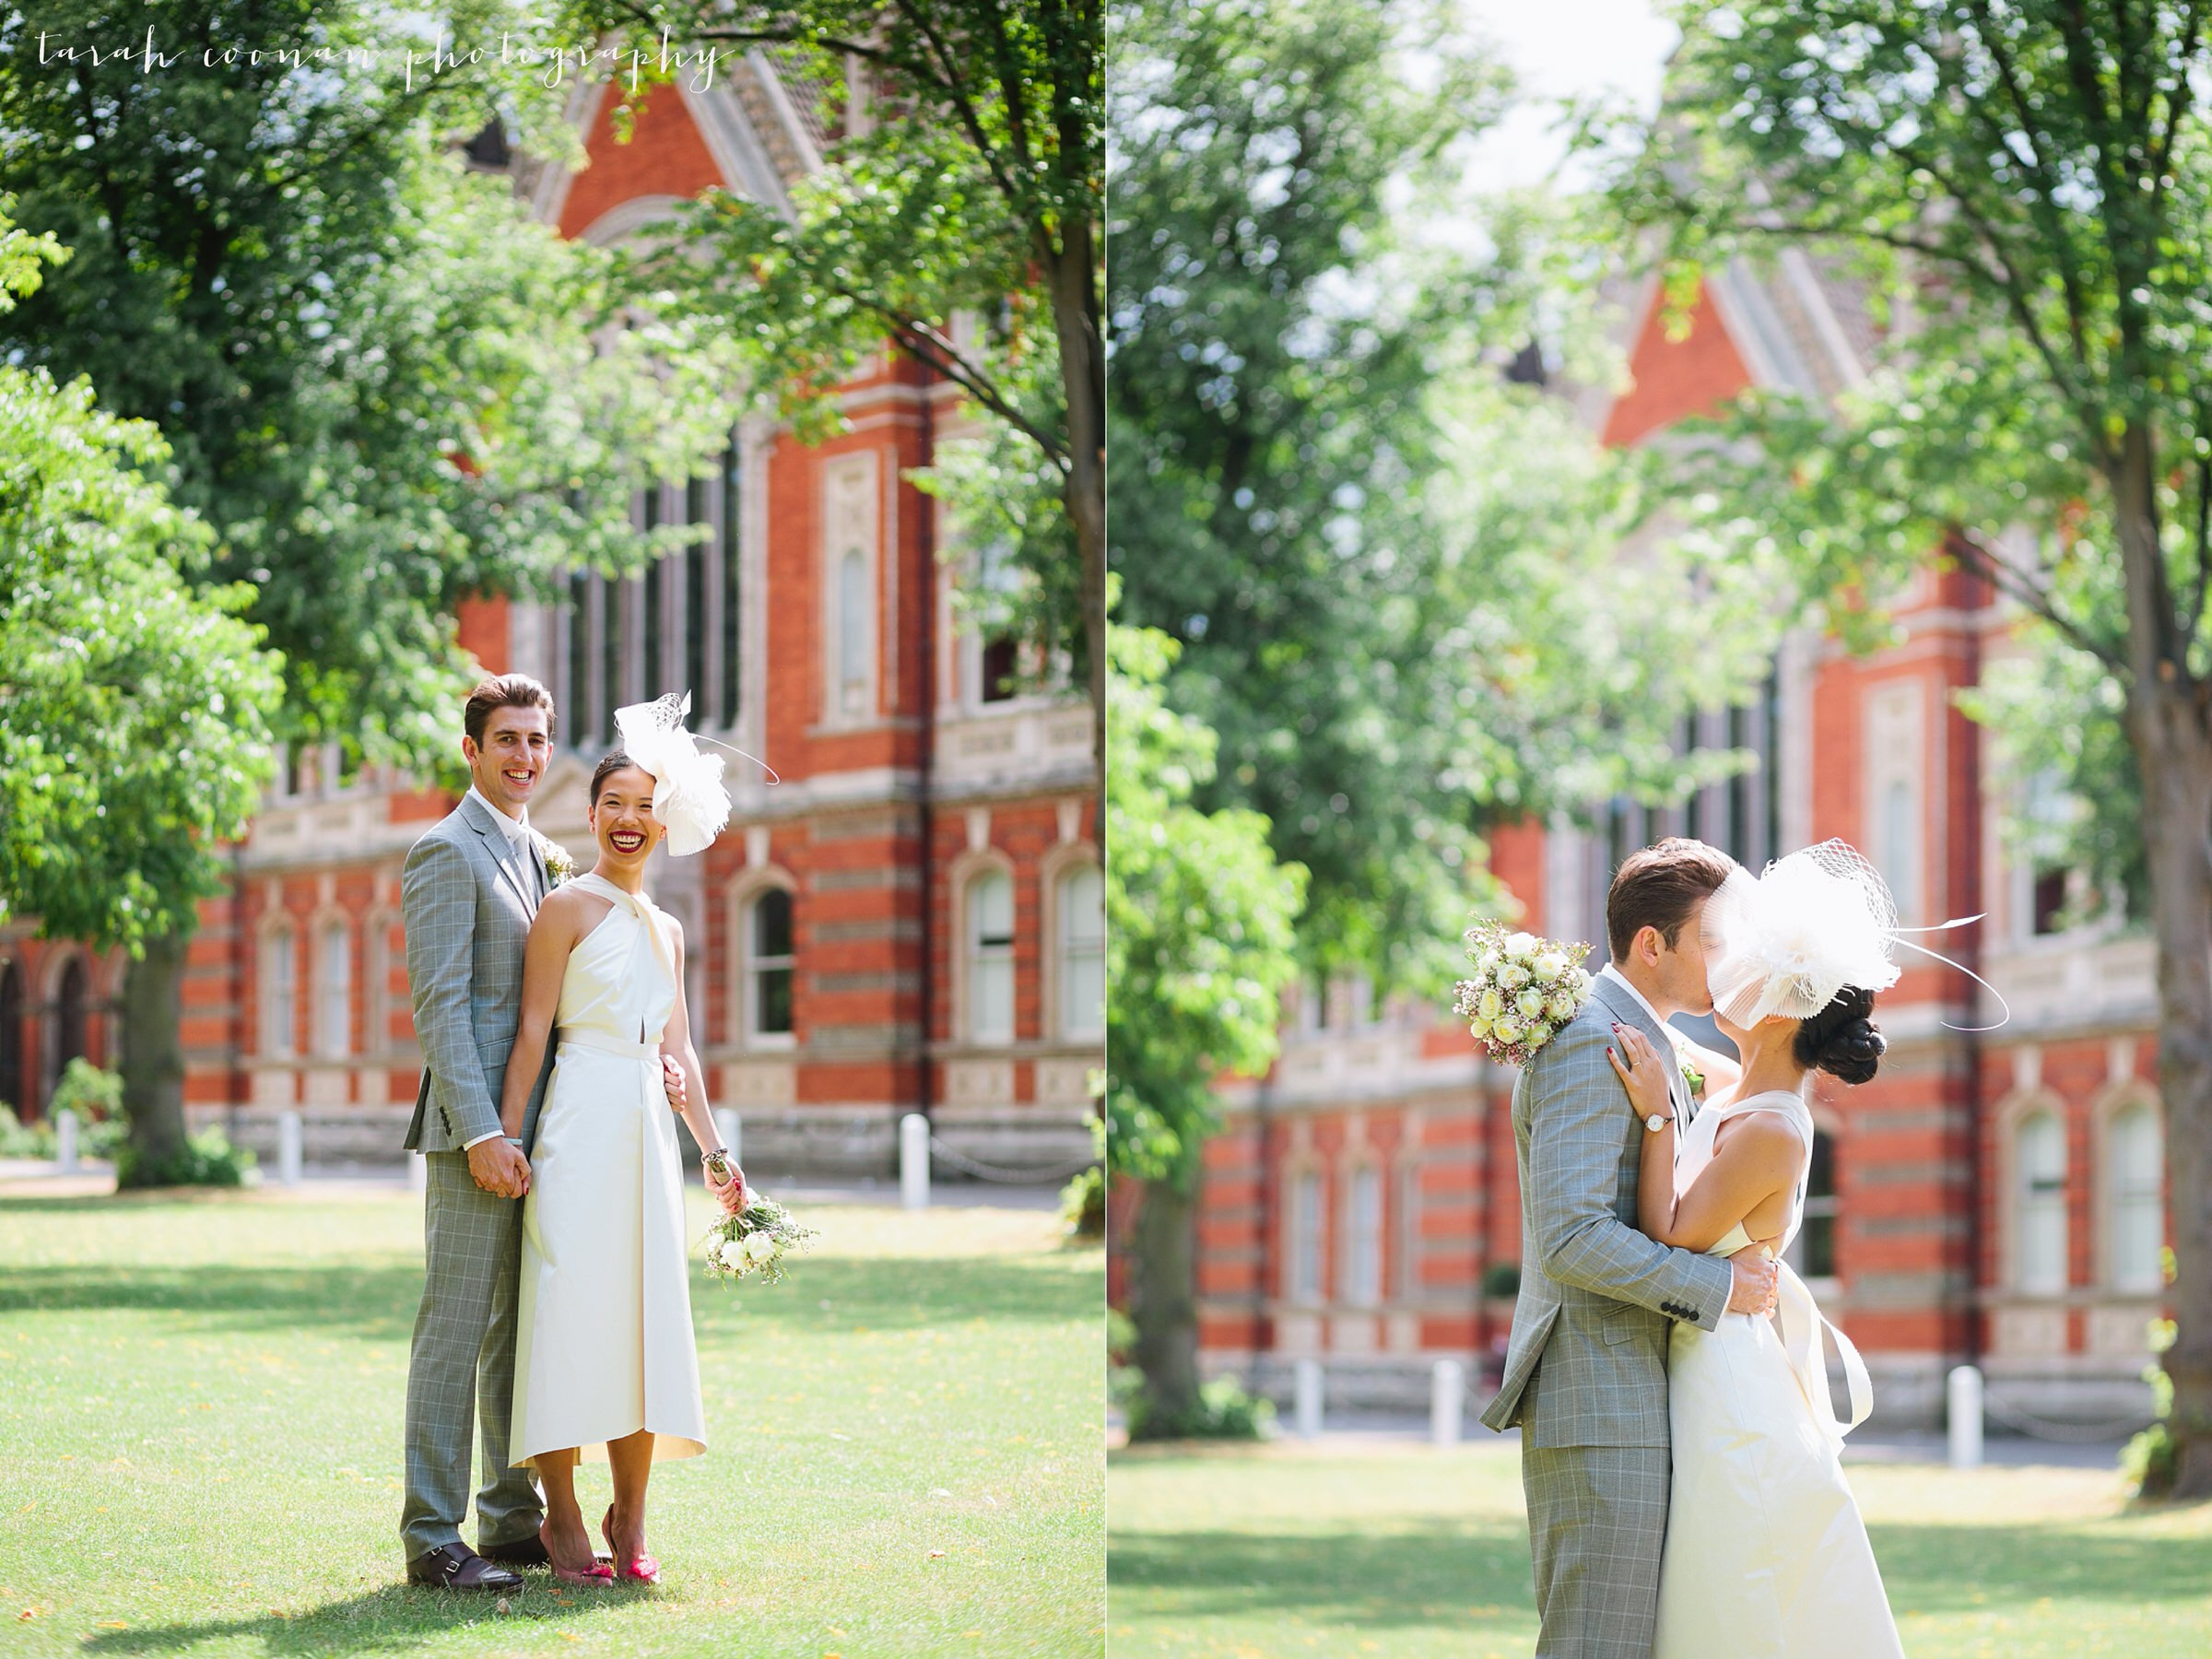 Dulwich College wedding - Mark & Trang